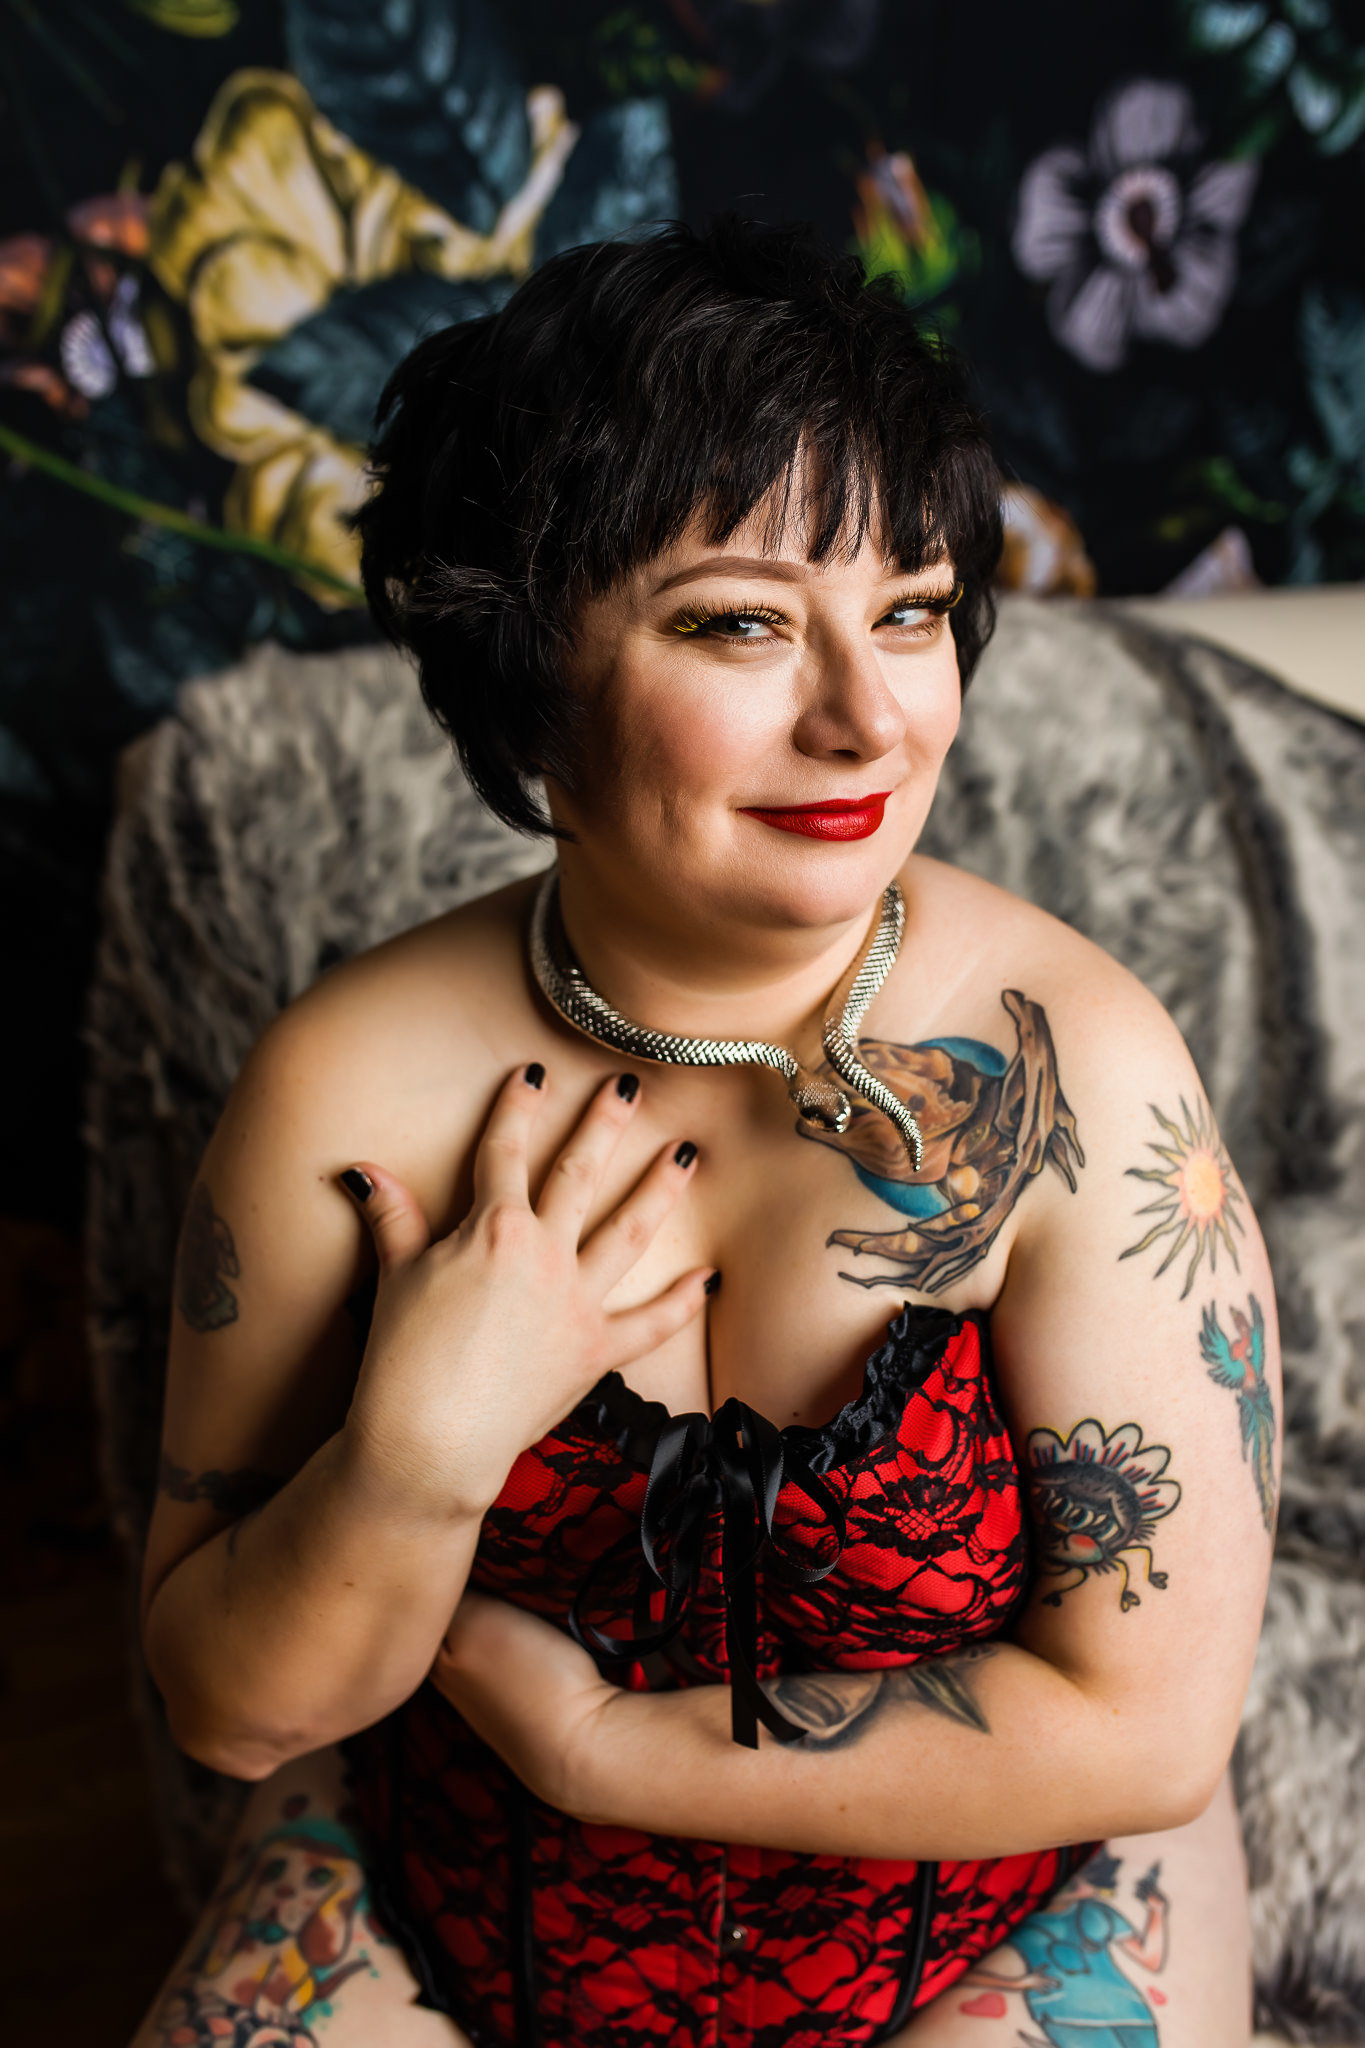 Boudoir photo of an expressive woman in a red corset